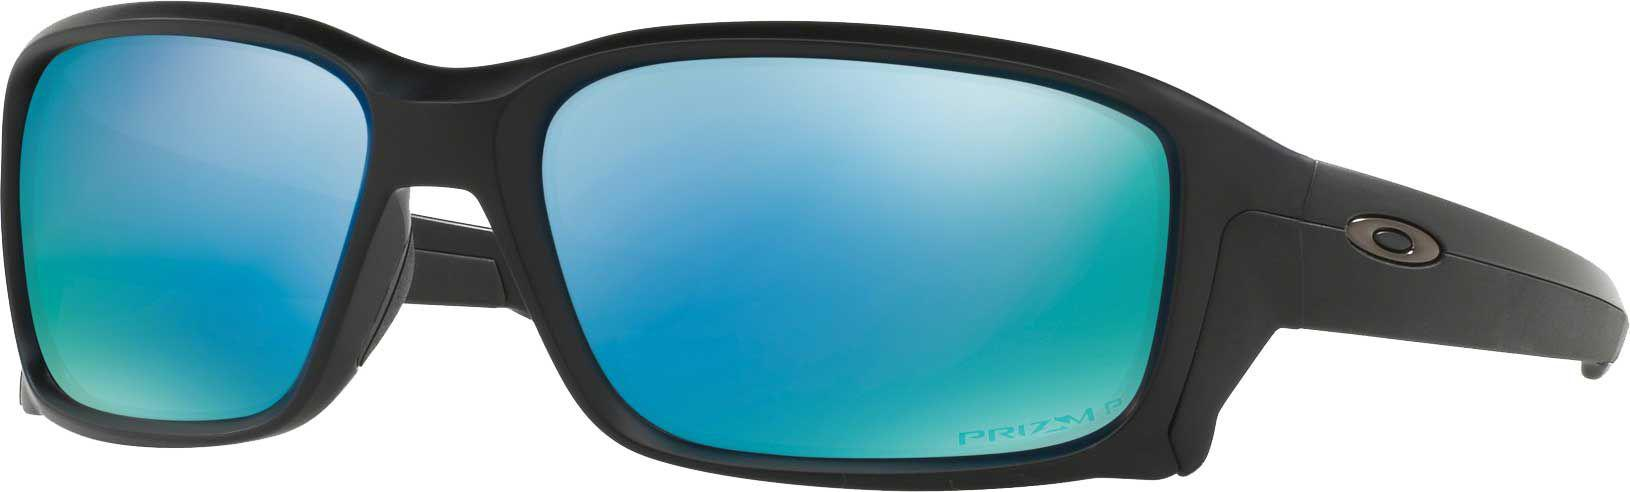 44a11b6563 Lyst - Oakley Straightlink Prizm Polarized Sunglasses in Blue for Men